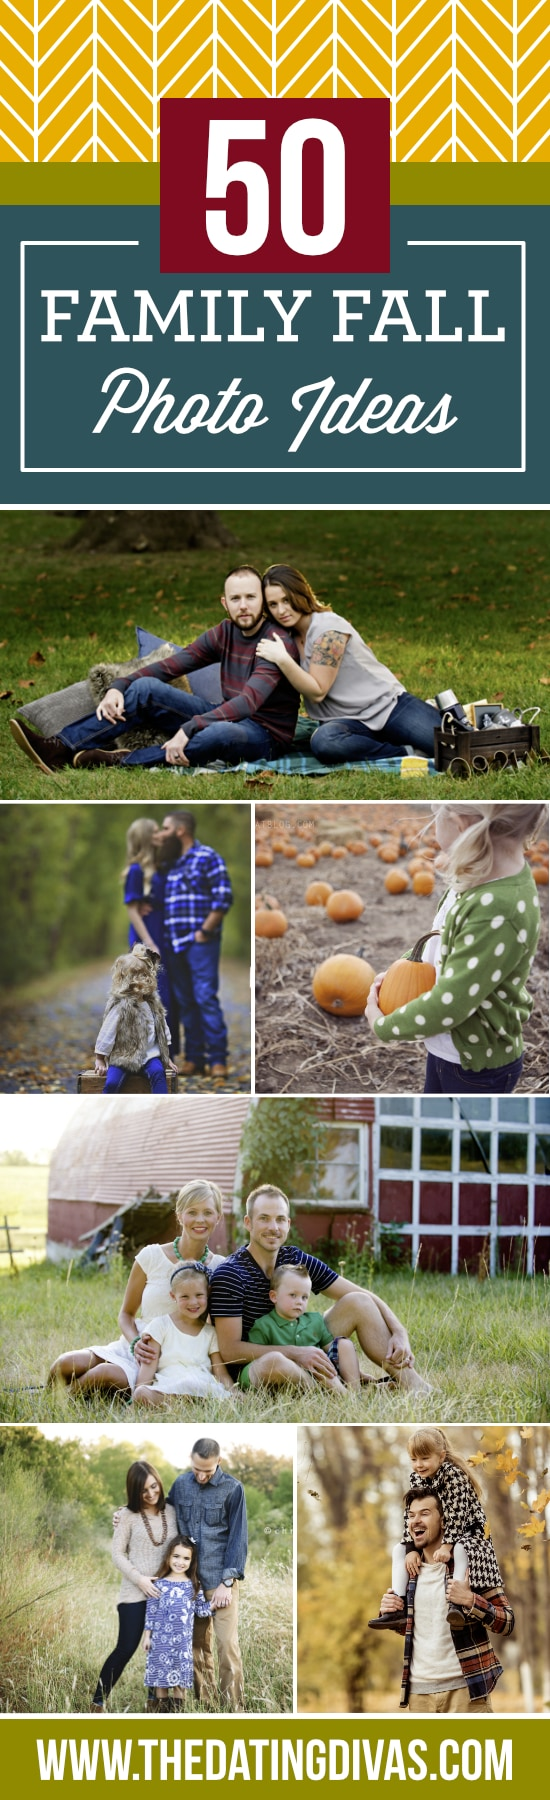 Family Fall Photo Ideas